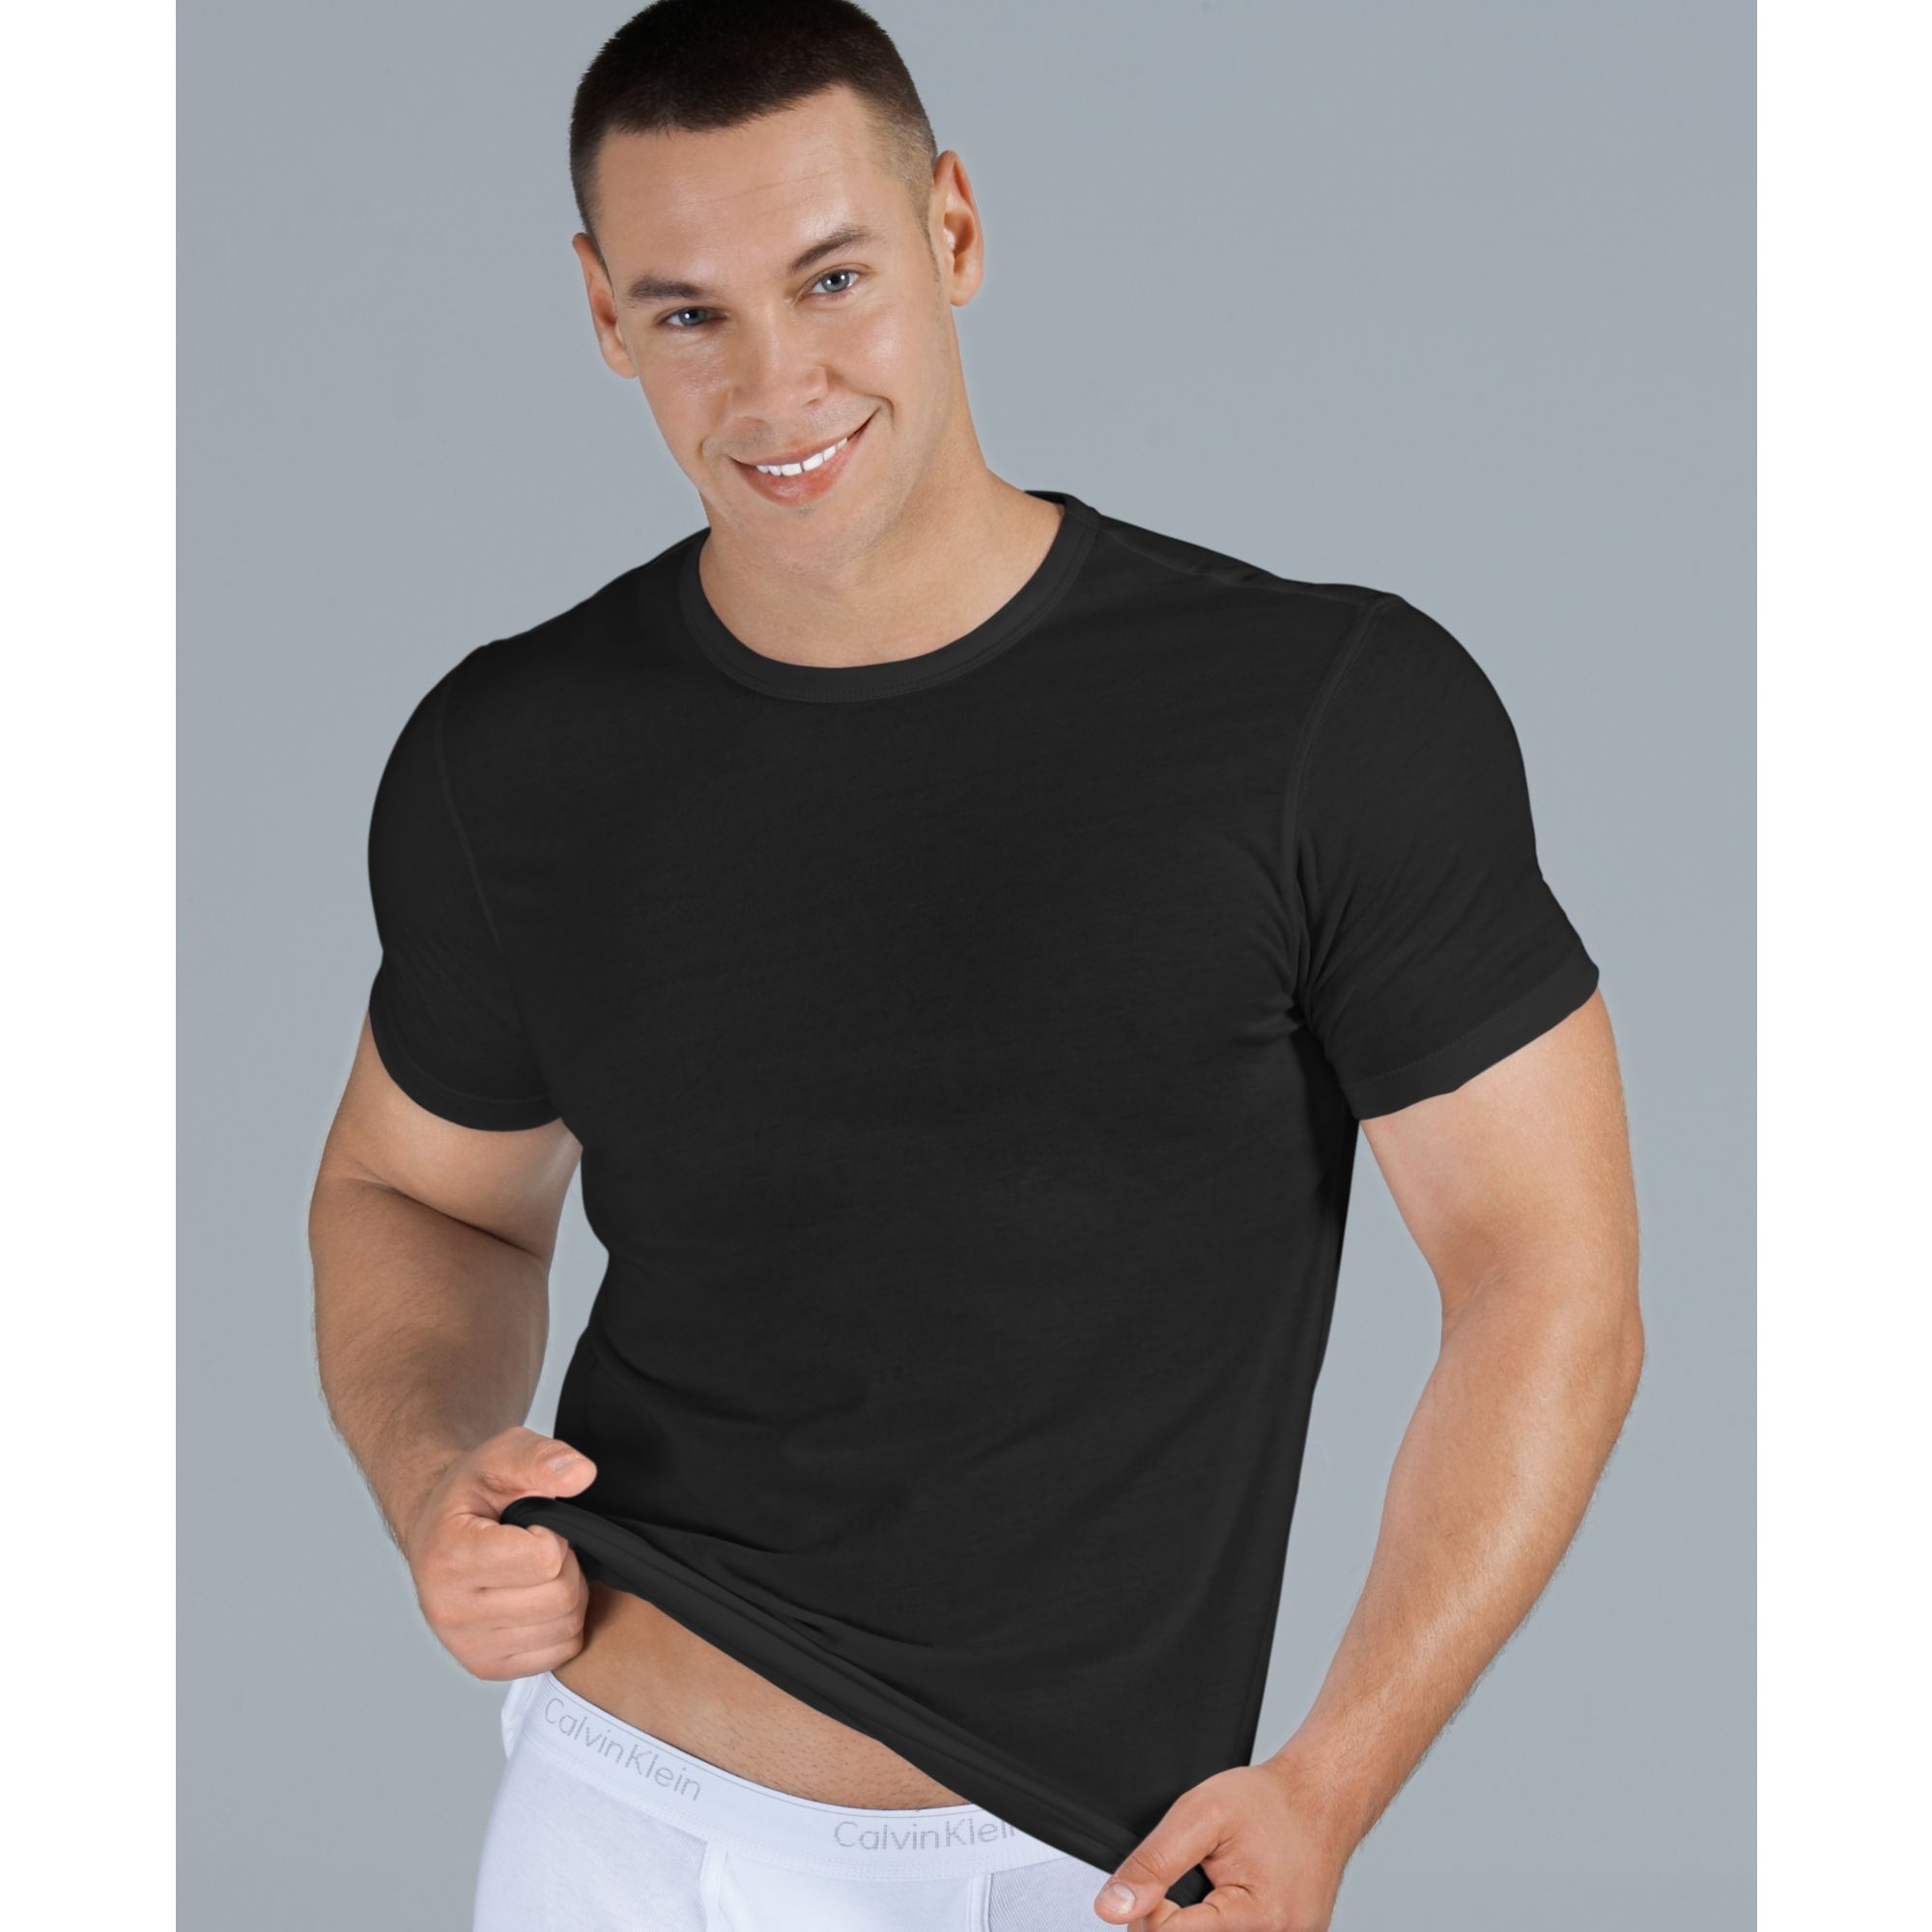 calvin klein body slim fit t shirt 3 pack in black for men. Black Bedroom Furniture Sets. Home Design Ideas